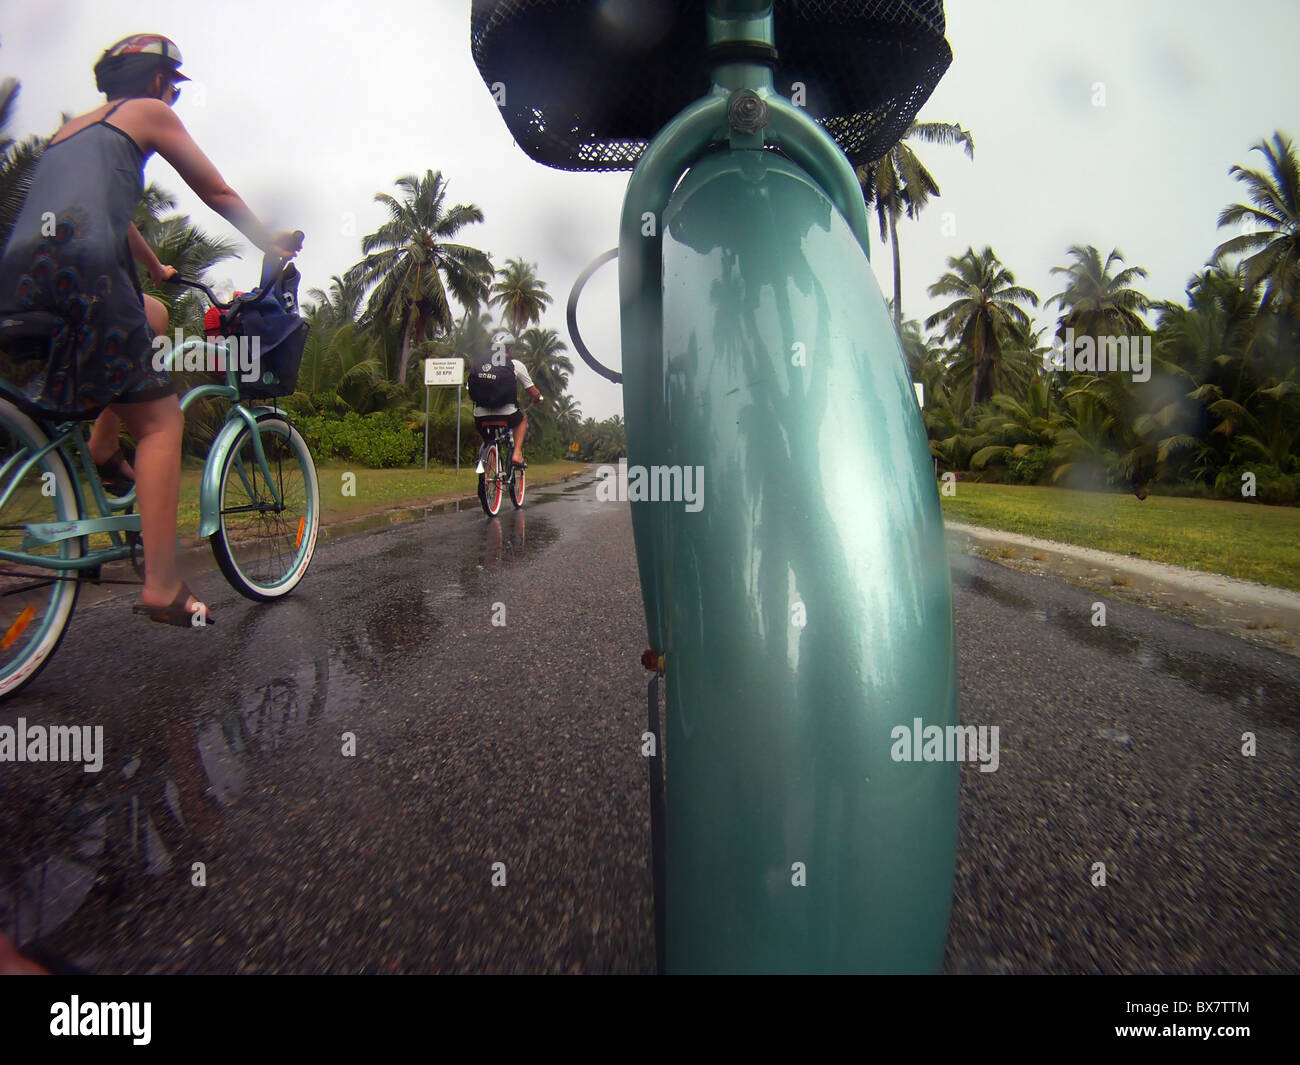 Tourists cycling in the monsoon, West Island, Cocos Keeling, Indian Ocean Stock Photo